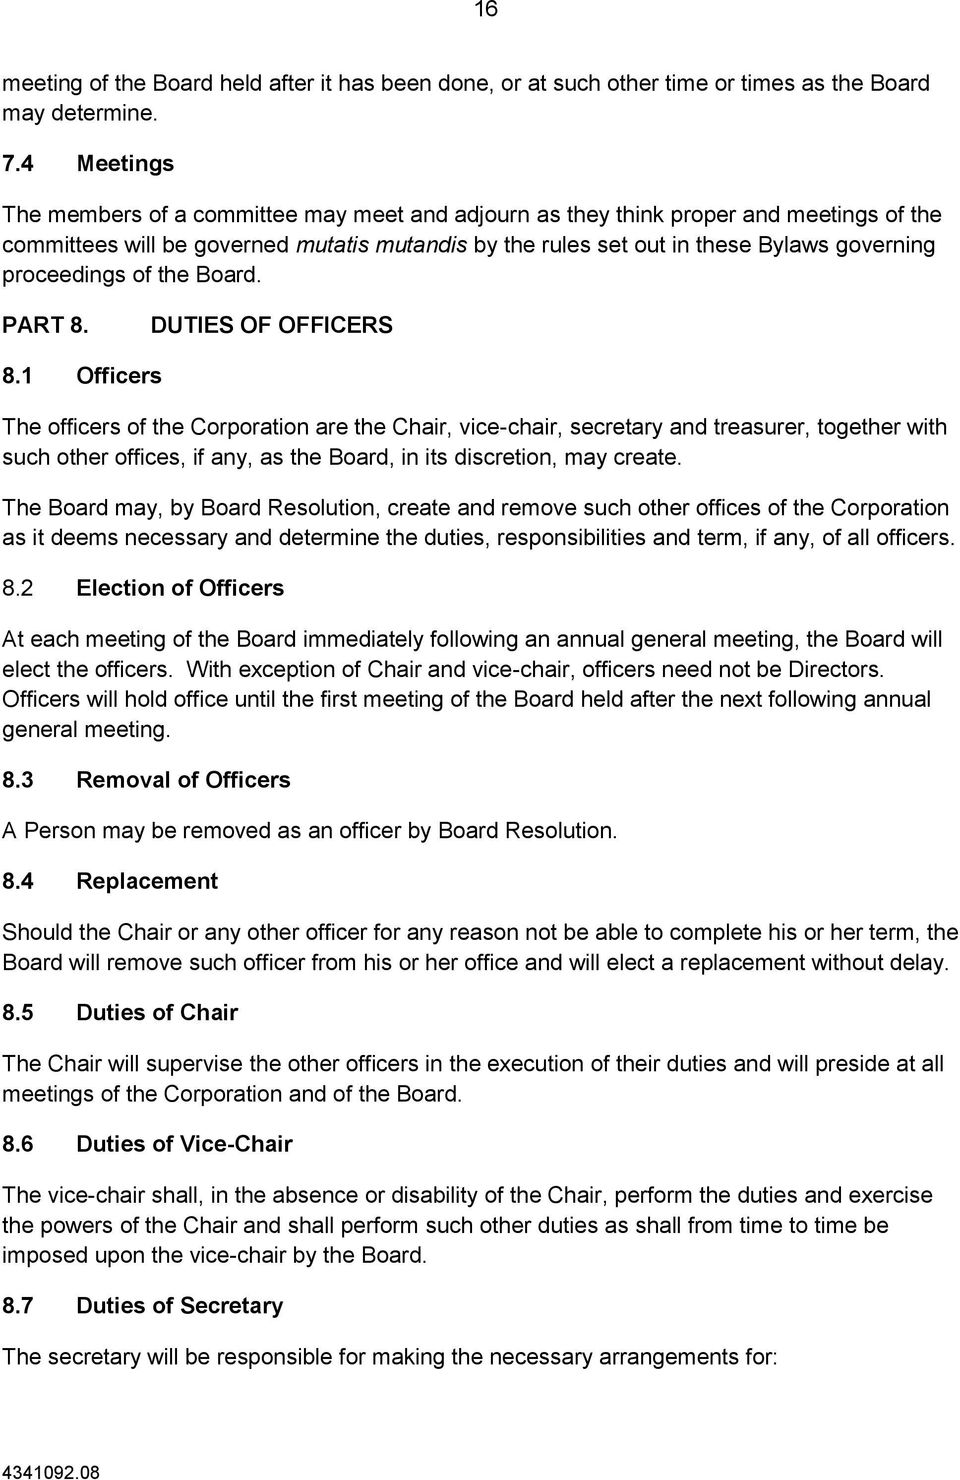 proceedings of the Board. PART 8. DUTIES OF OFFICERS 8.